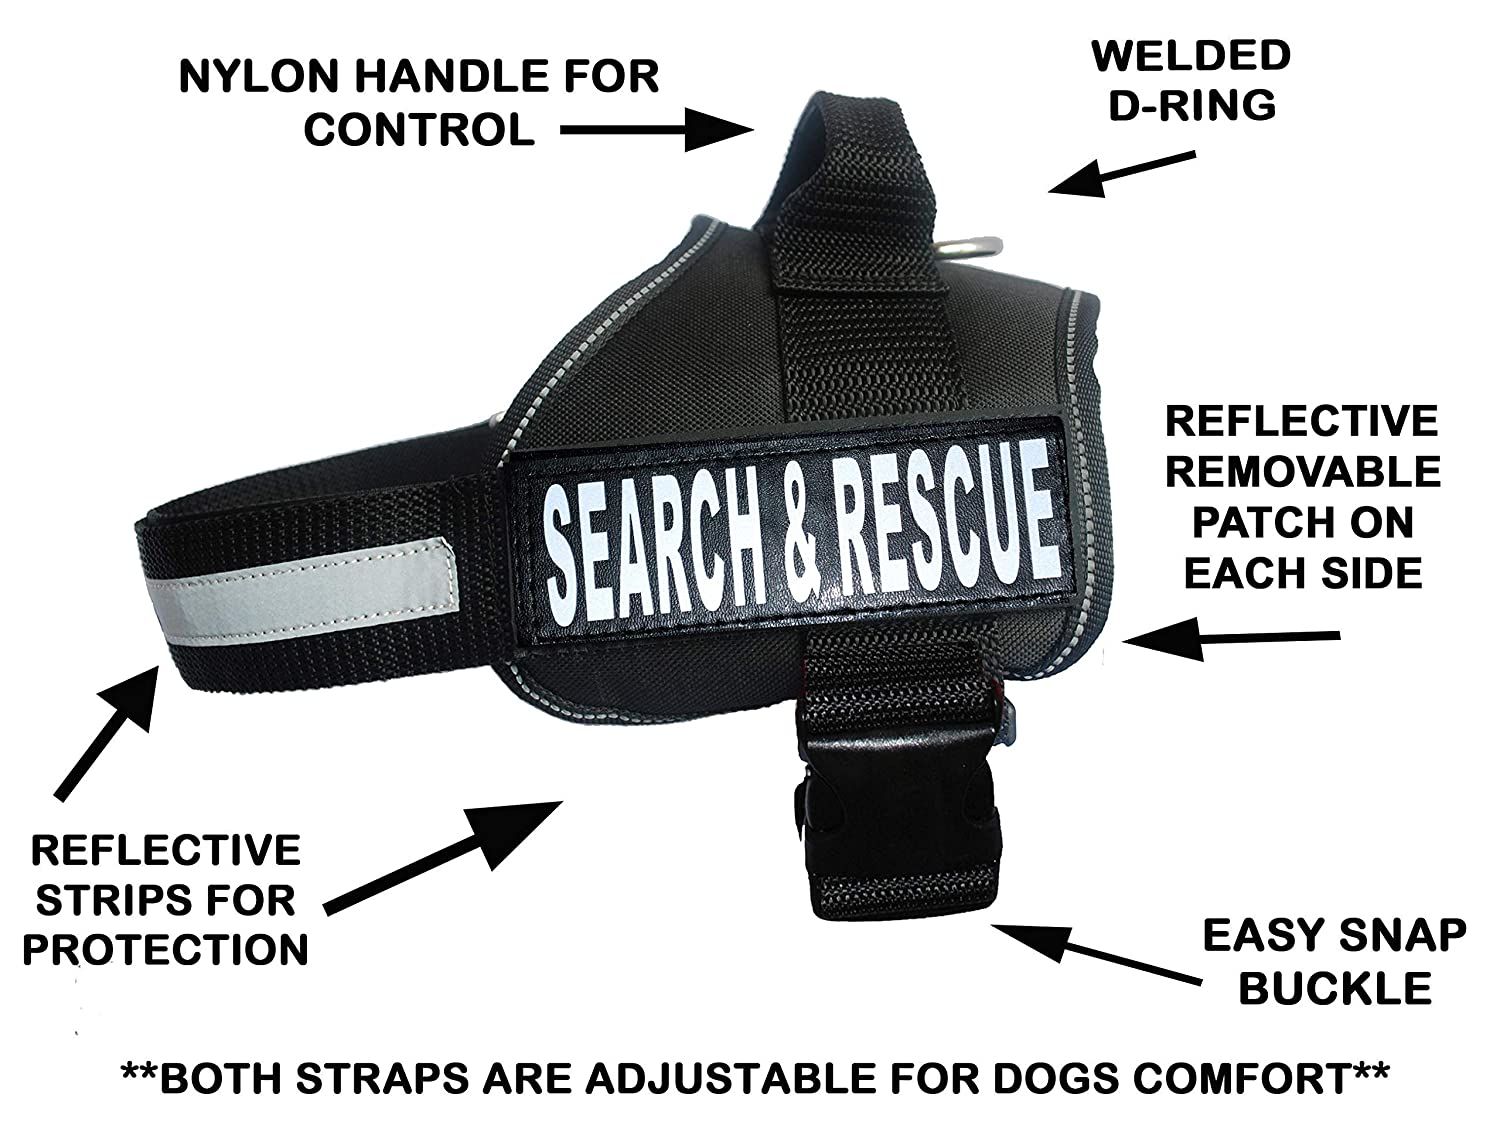 Black Girth 30-42\ Black Girth 30-42\ Service Dog Search & Rescue Harness Vest Cool Comfort Nylon for Dogs Small Medium Large Girth Purchase Comes with 2 Search & Rescue Patches. Please Measure Your Dog Before Ordering.